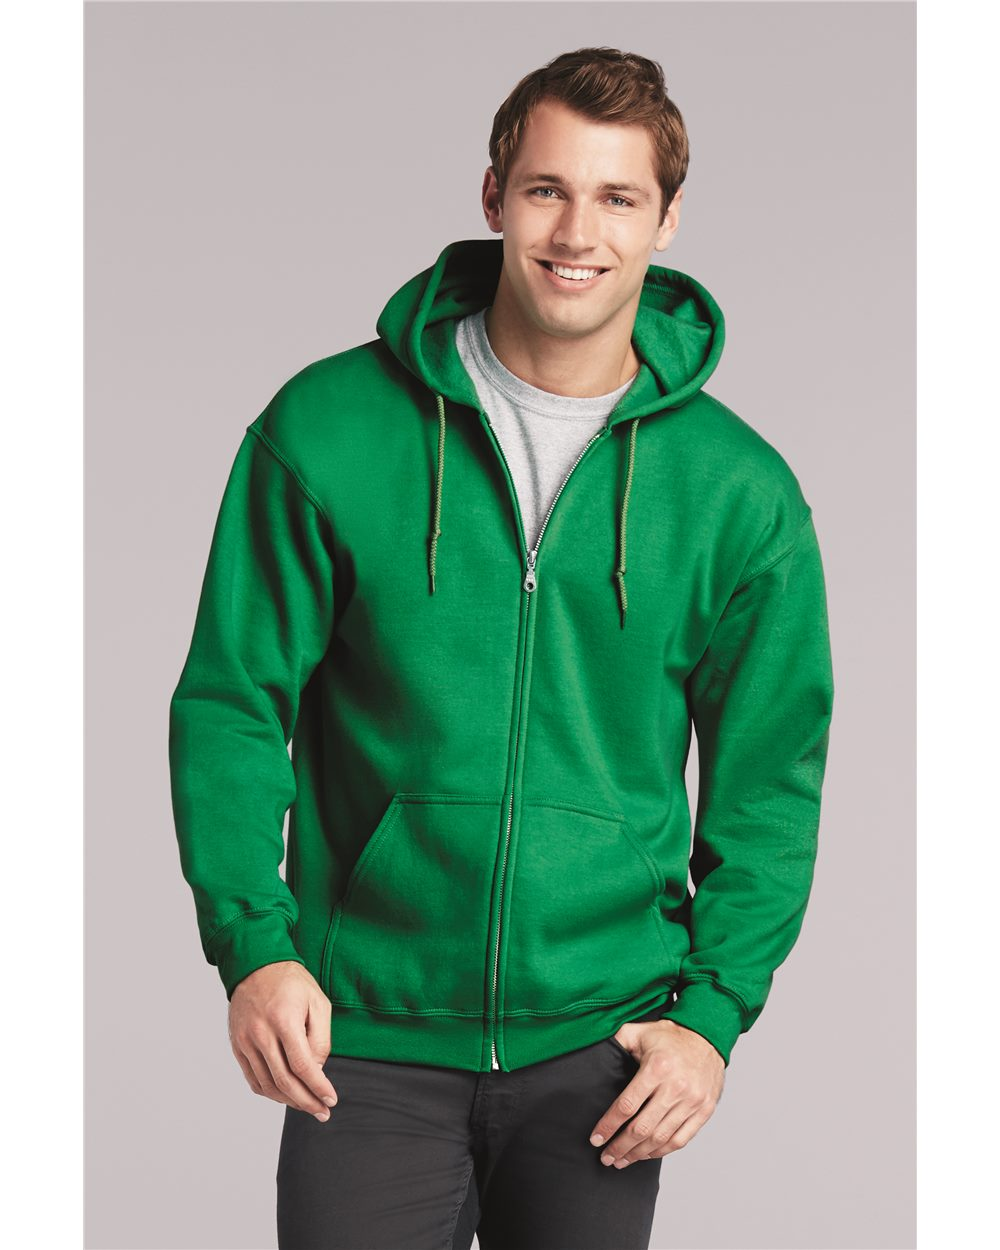 Gildan 18600-Heavy Blend Full Zip Hooded Sweatshirt.